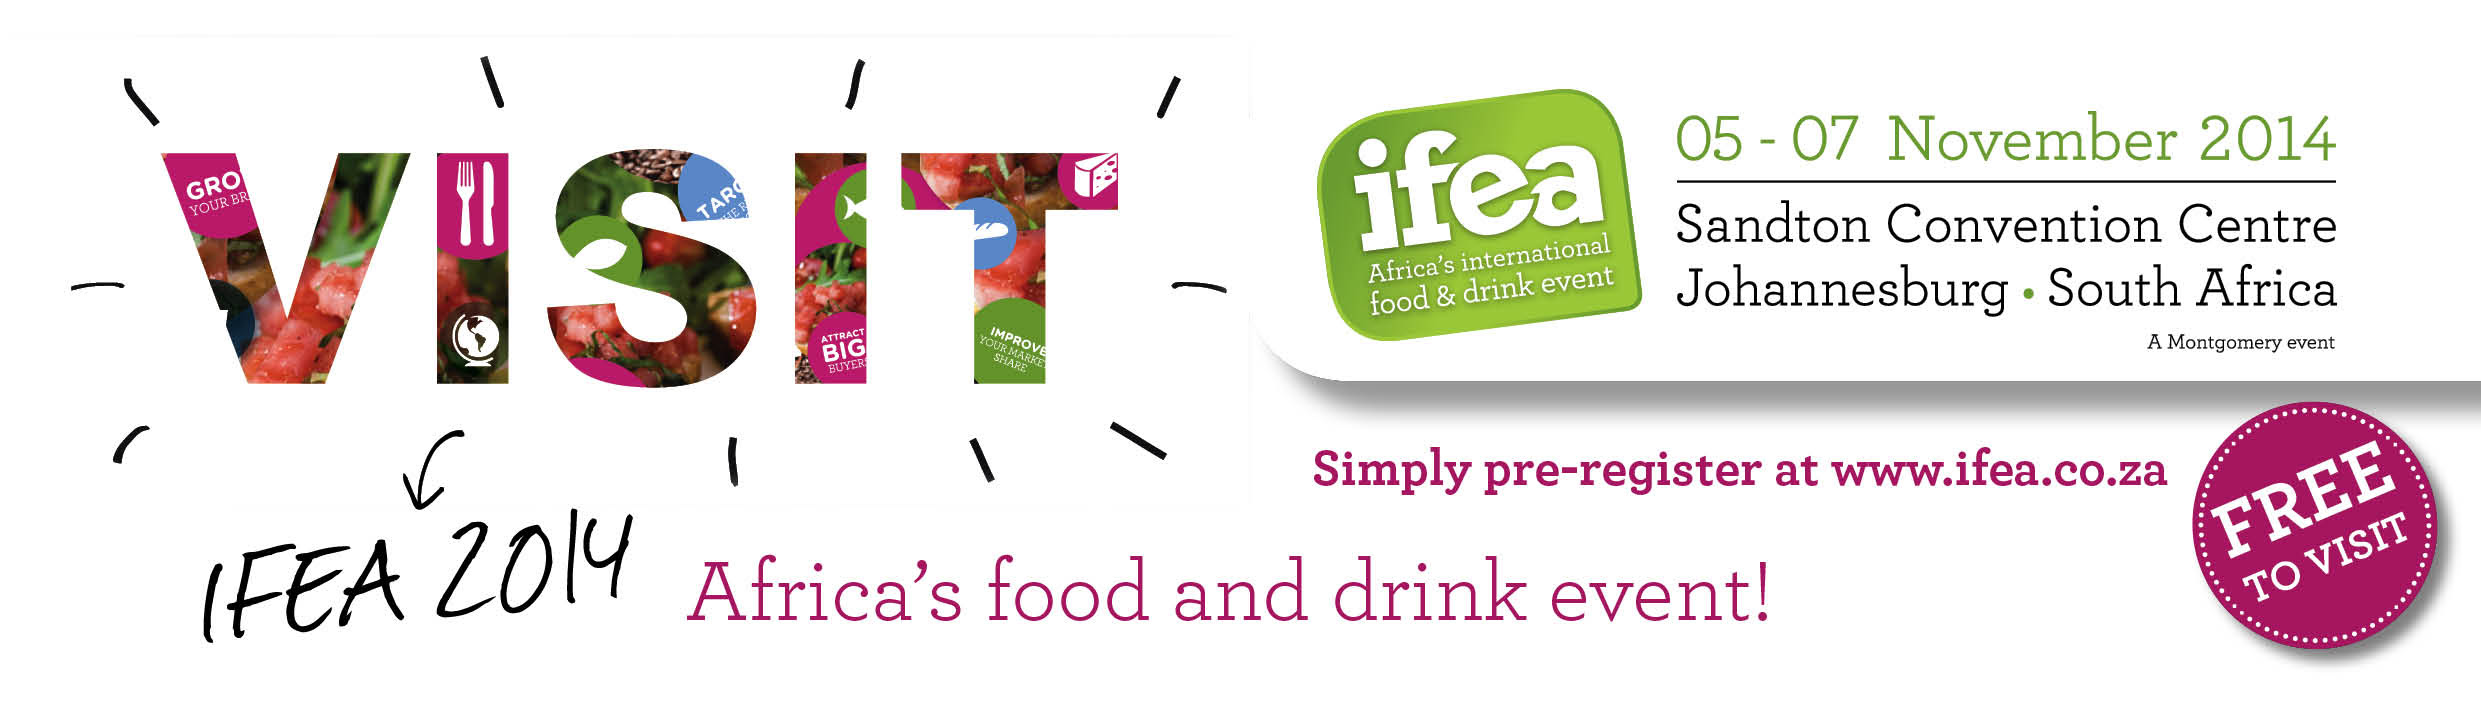 IFEA 2014 banner. Visitors enter free of charge.